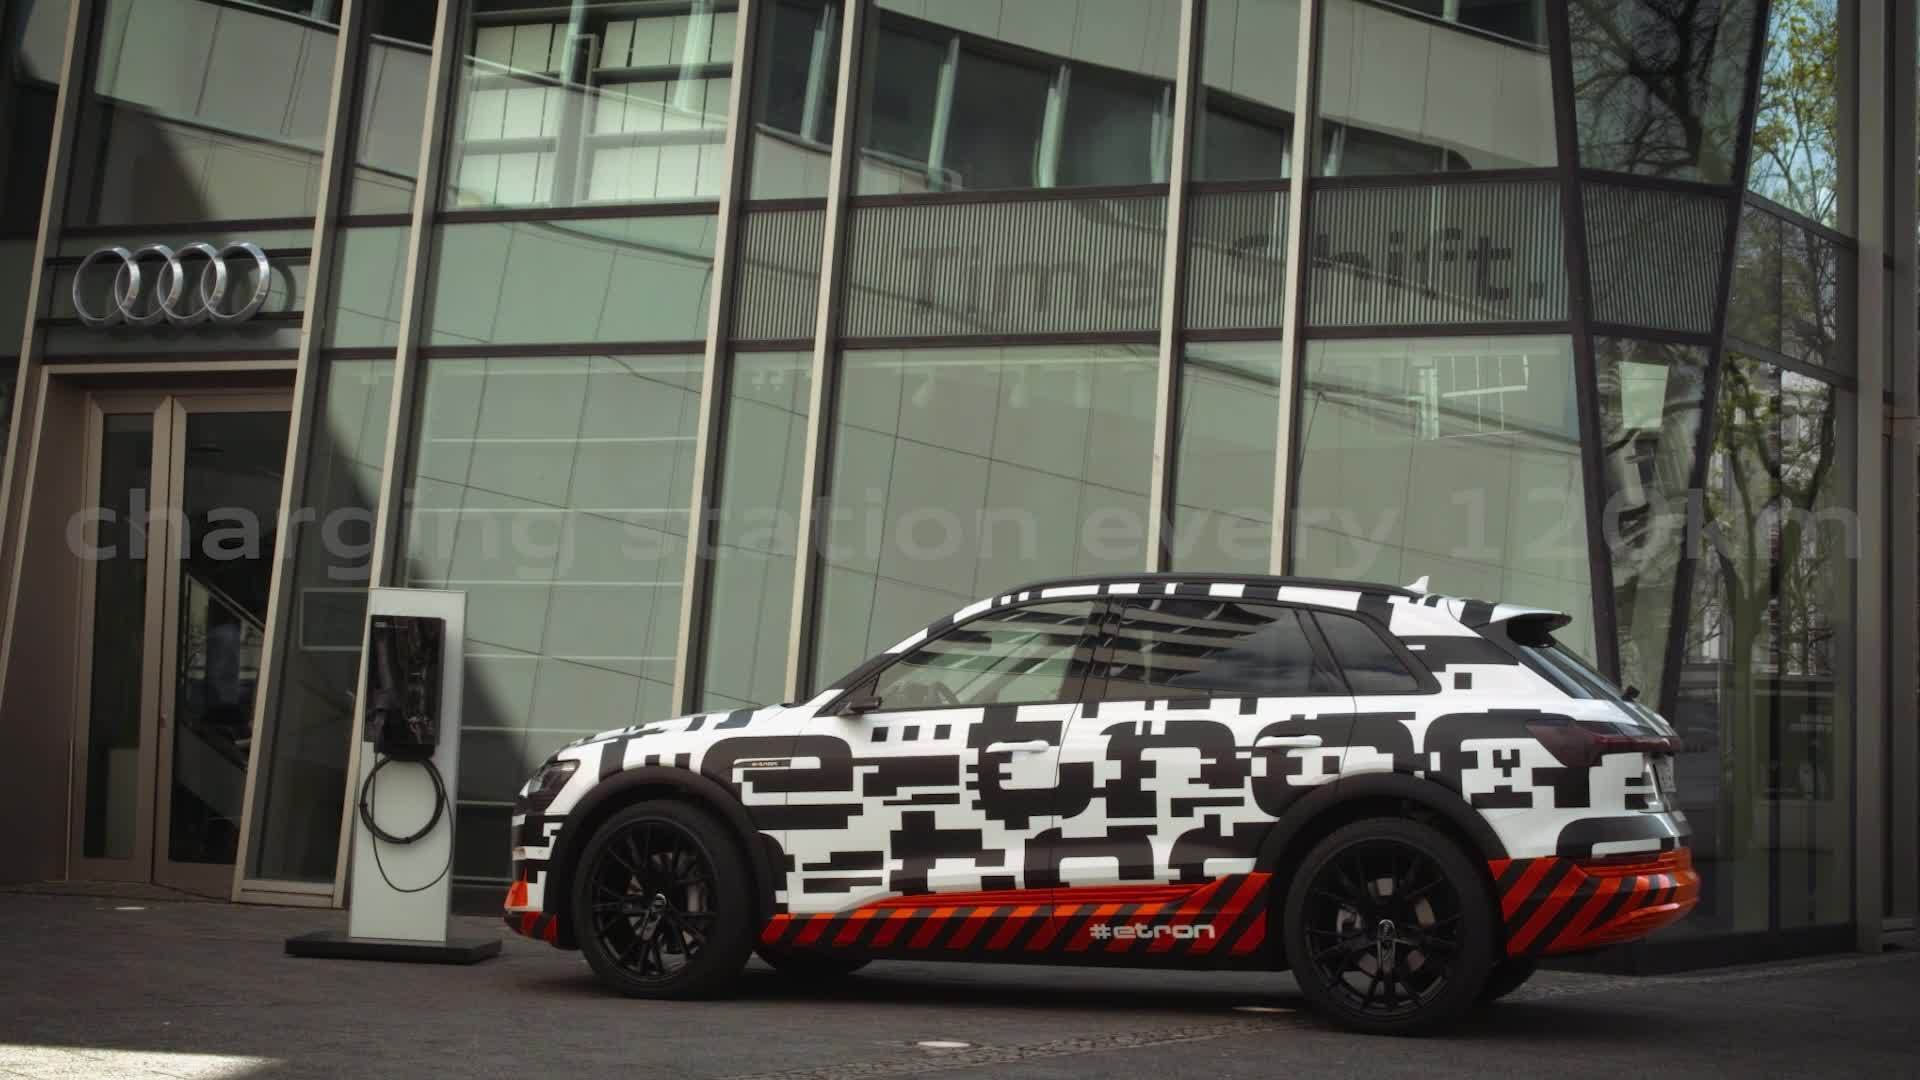 Audi e-tron prototype: Fully charged in nearly 30 minutes